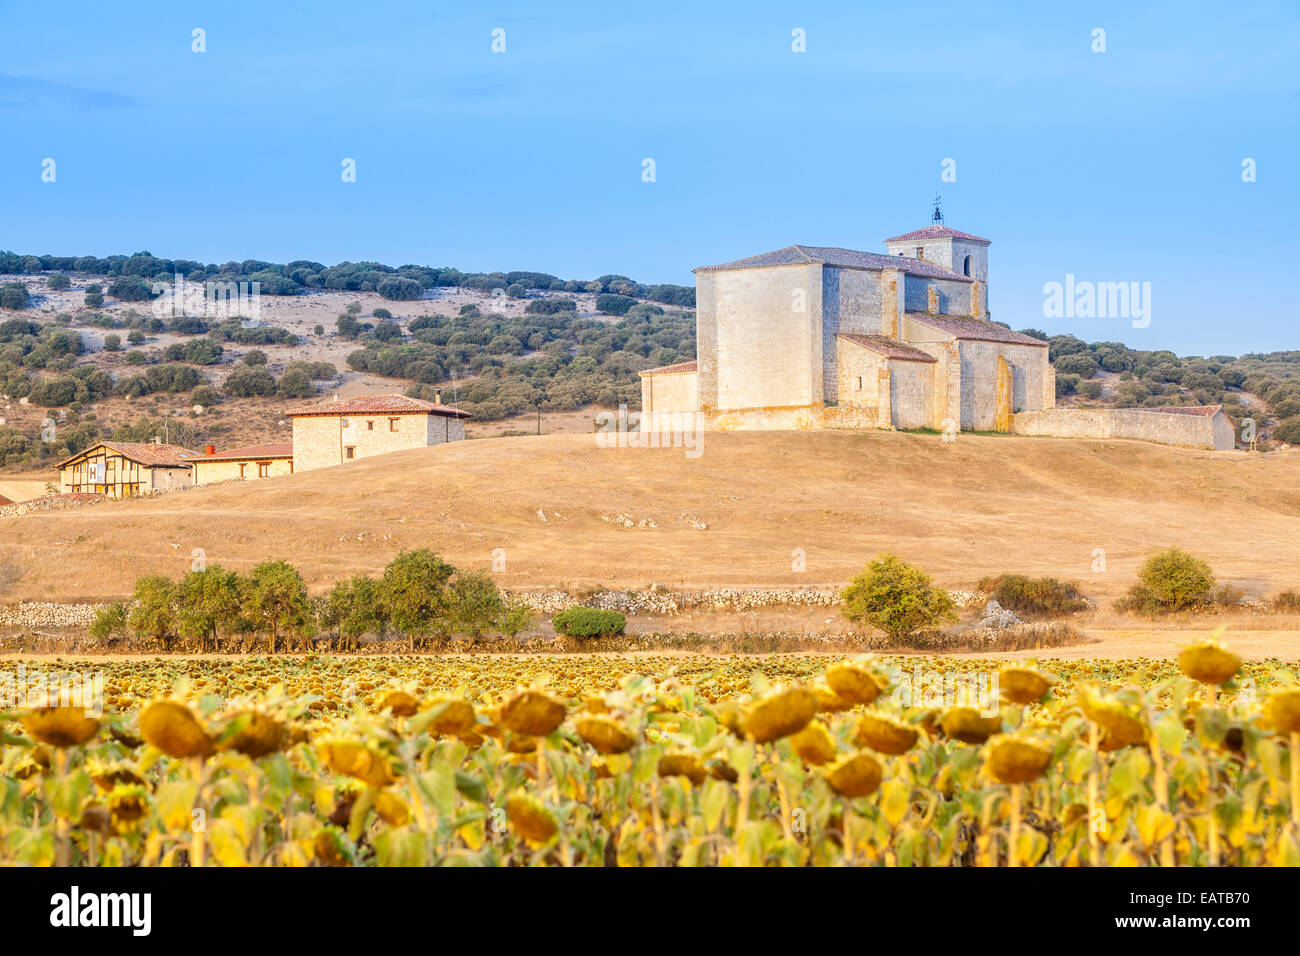 Church of San Martín in Atapuerca village in the Way of St. James, Burgos, Spain - Stock Image